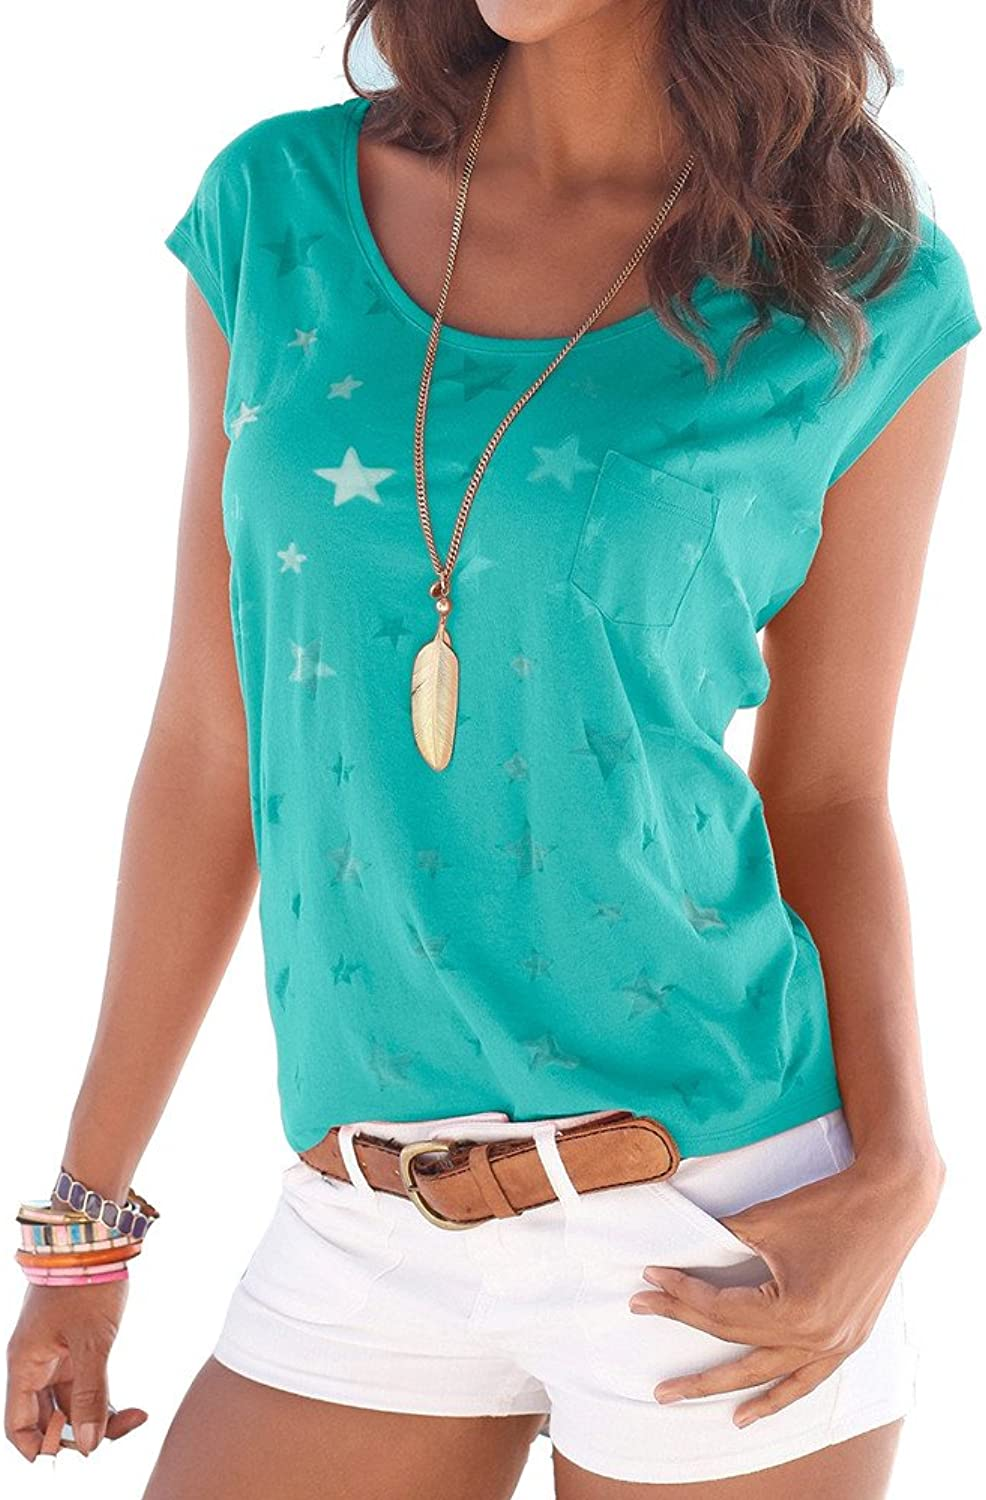 Coutgo Woman's Sexy Star Print Round Neck Shirt Short Sleeve Long Sleeve Blouse Tops